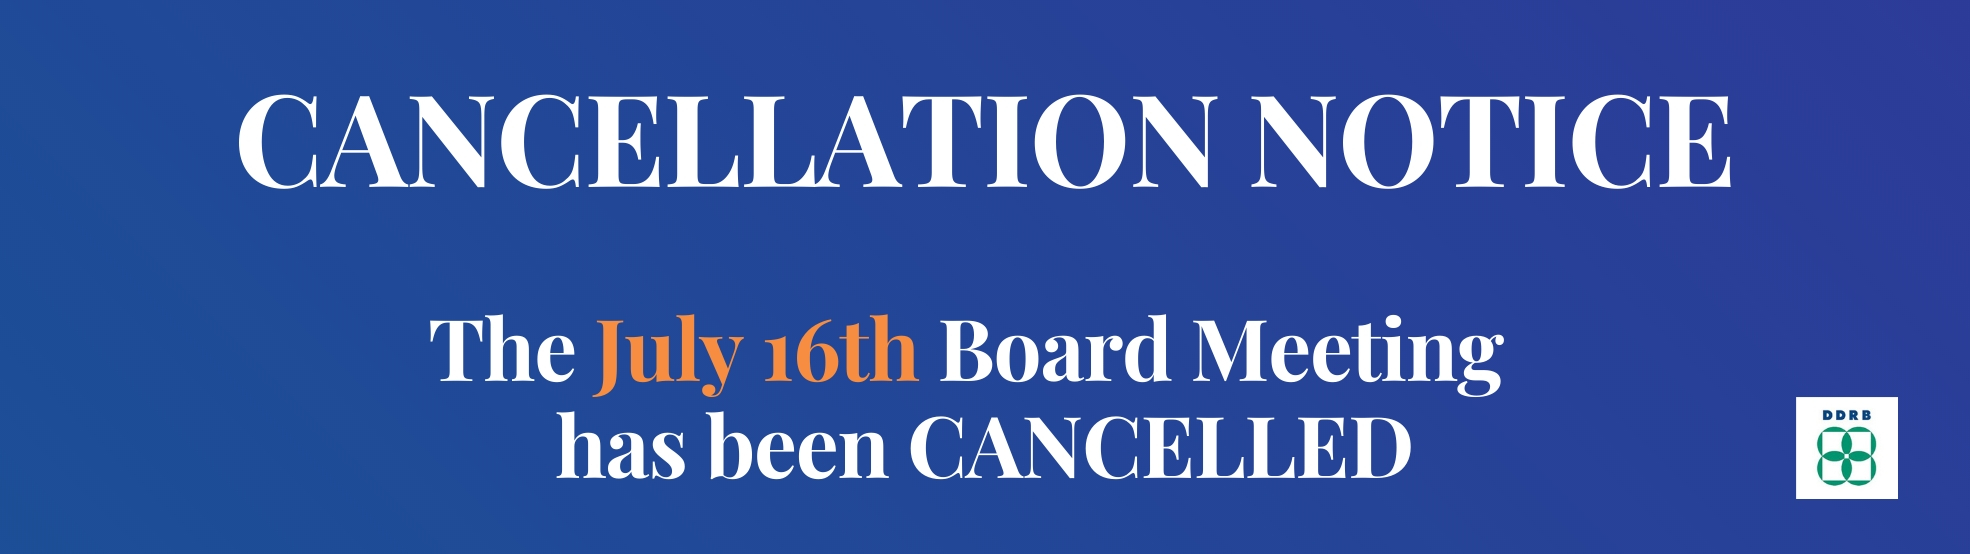 DDRB July 16th Board Meeting Cancelled Website